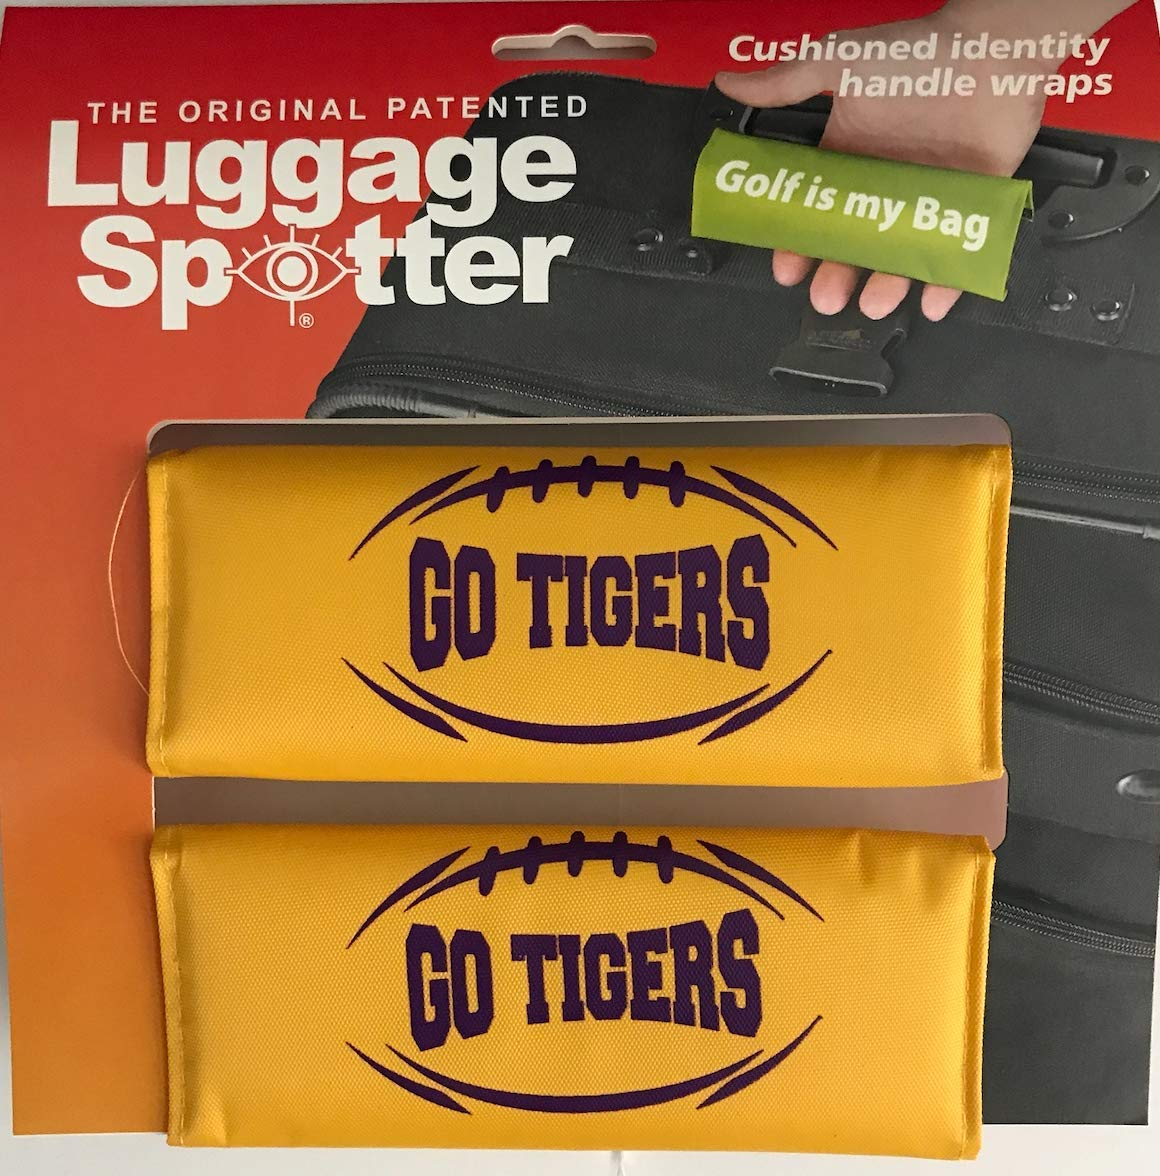 Luggage Spotter LSU Tigers GO Tigers Luggage Locator/Handle Grip/Luggage Grip/Travel Bag Tag/Luggage Handle Wrap 2-PK by Luggage Spotter